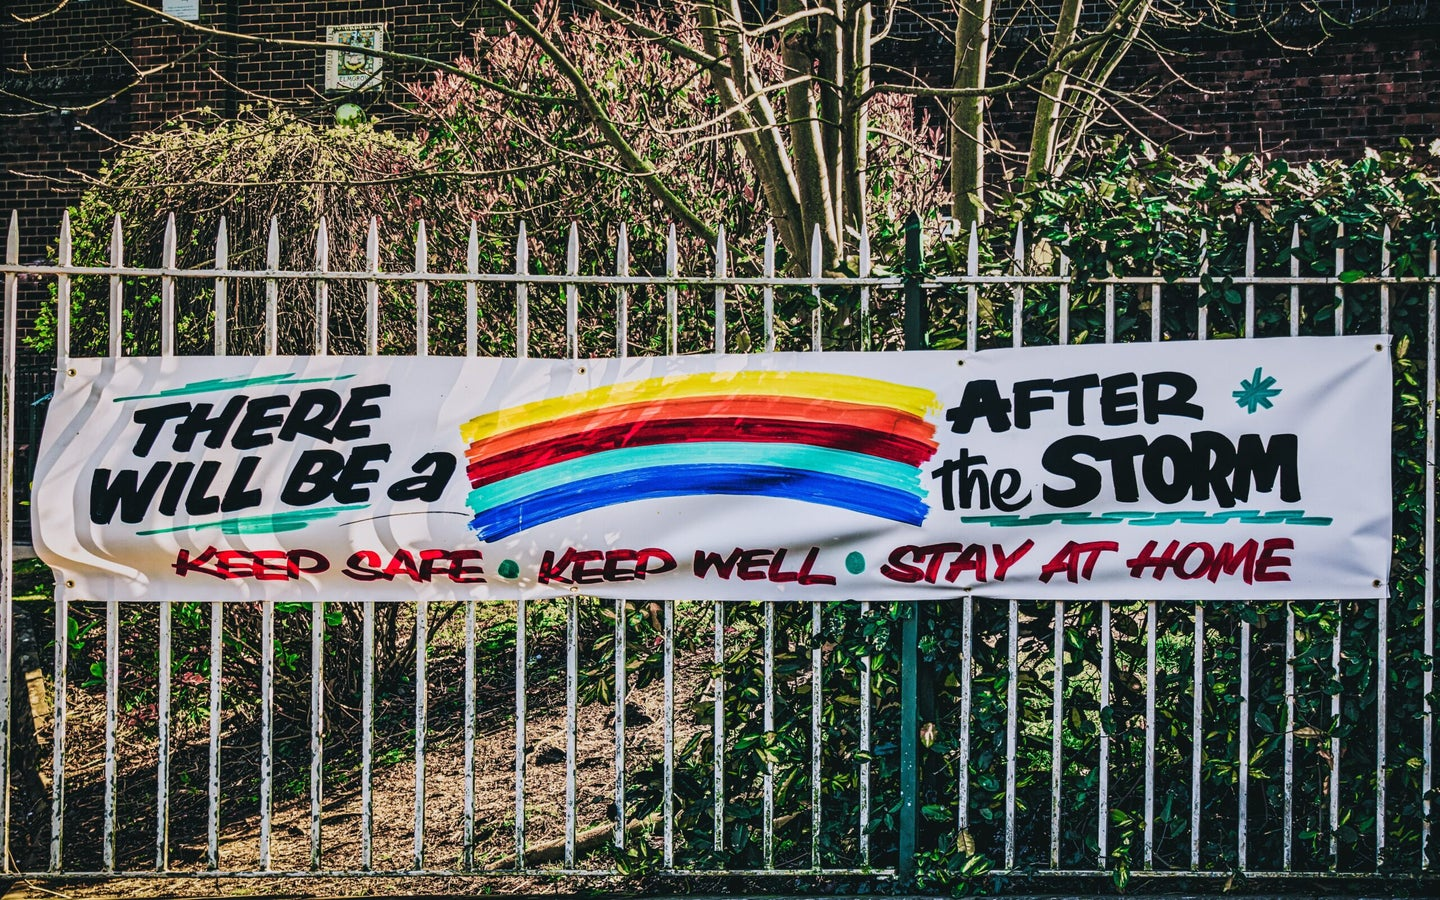 """A school in Belfast, Ireland hangs up a banner that says, """"there will be a storm after the storm."""""""